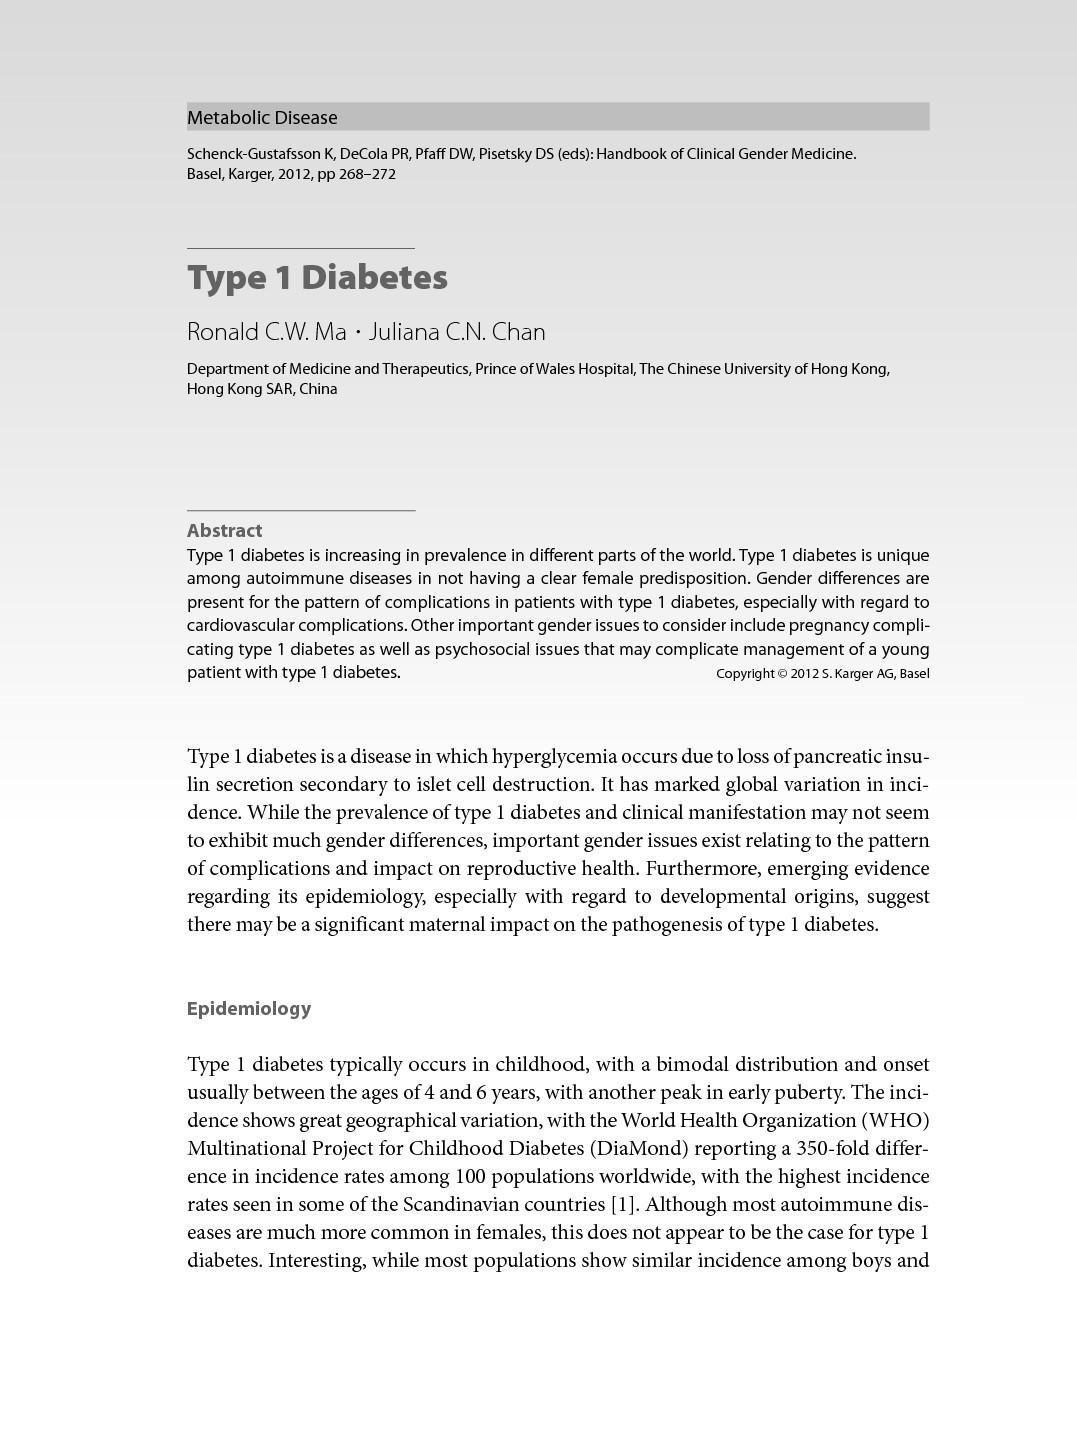 Type 1 Diabetes In China